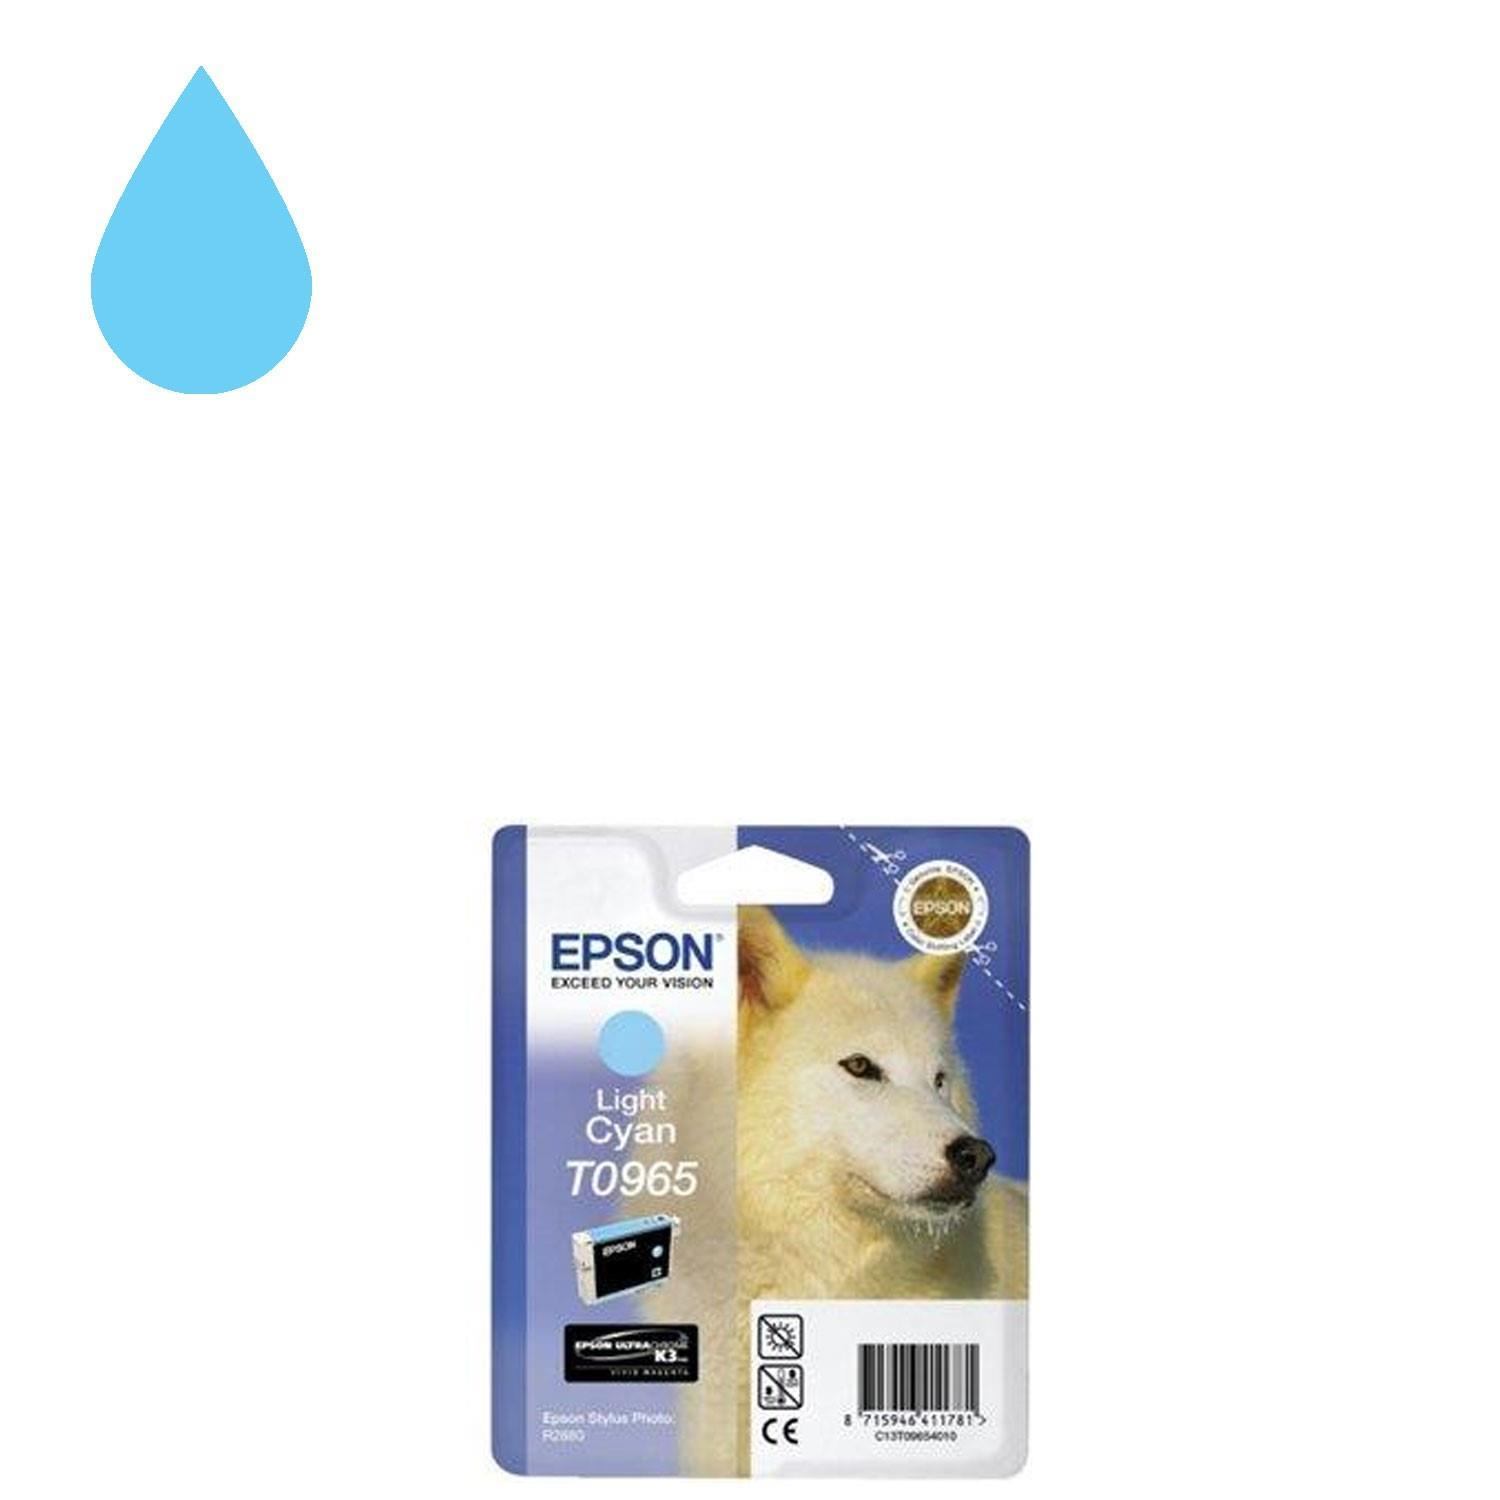 Epson UltraChrome K3 T0965 Ink Cartridge - Light Cyan